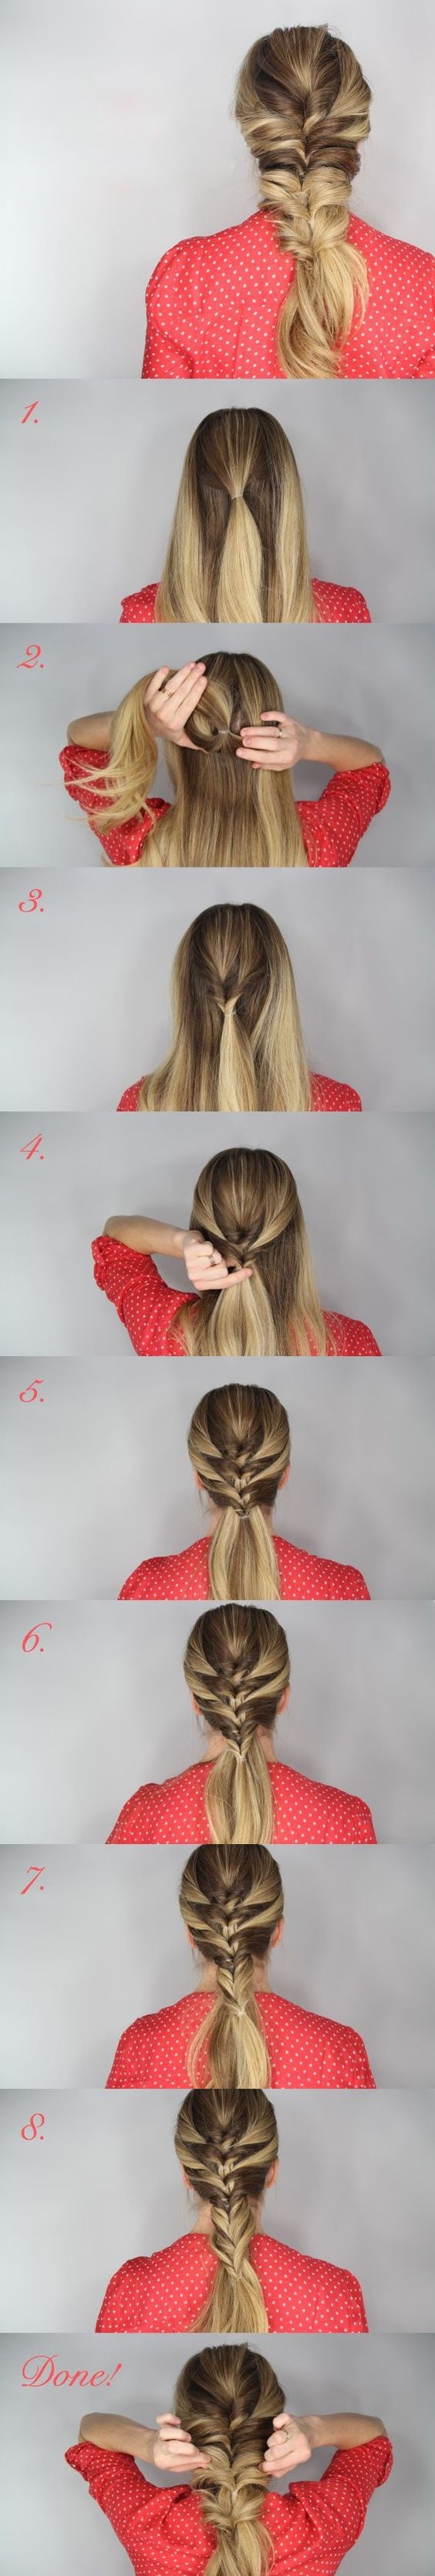 Shortcut to Fishtail Braid | Makeup Mania: